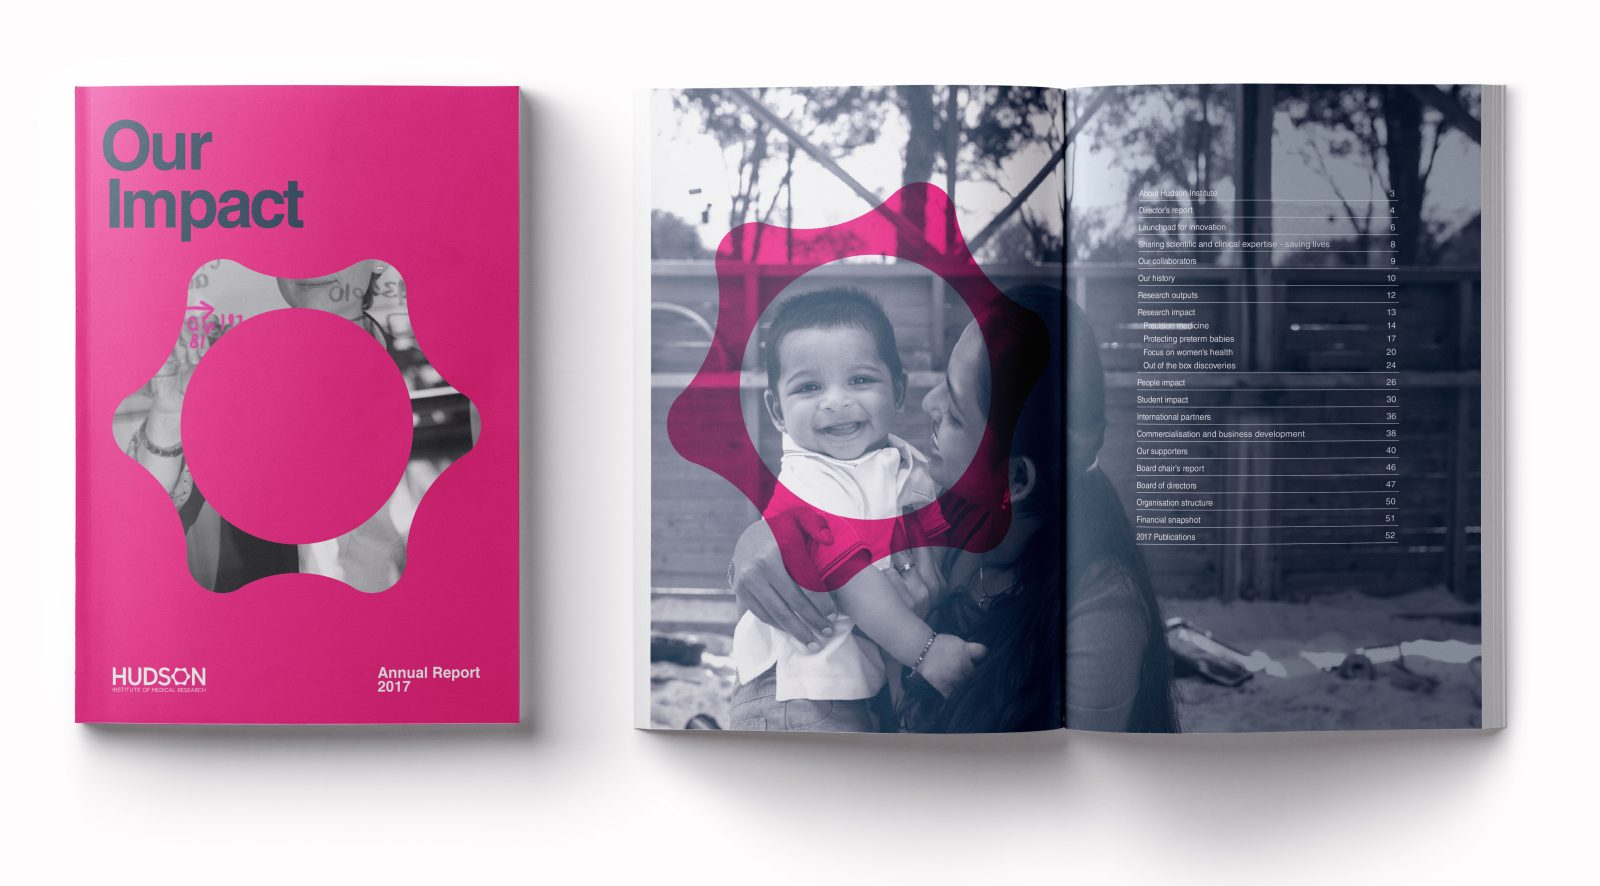 Hudson Institure annual report cover